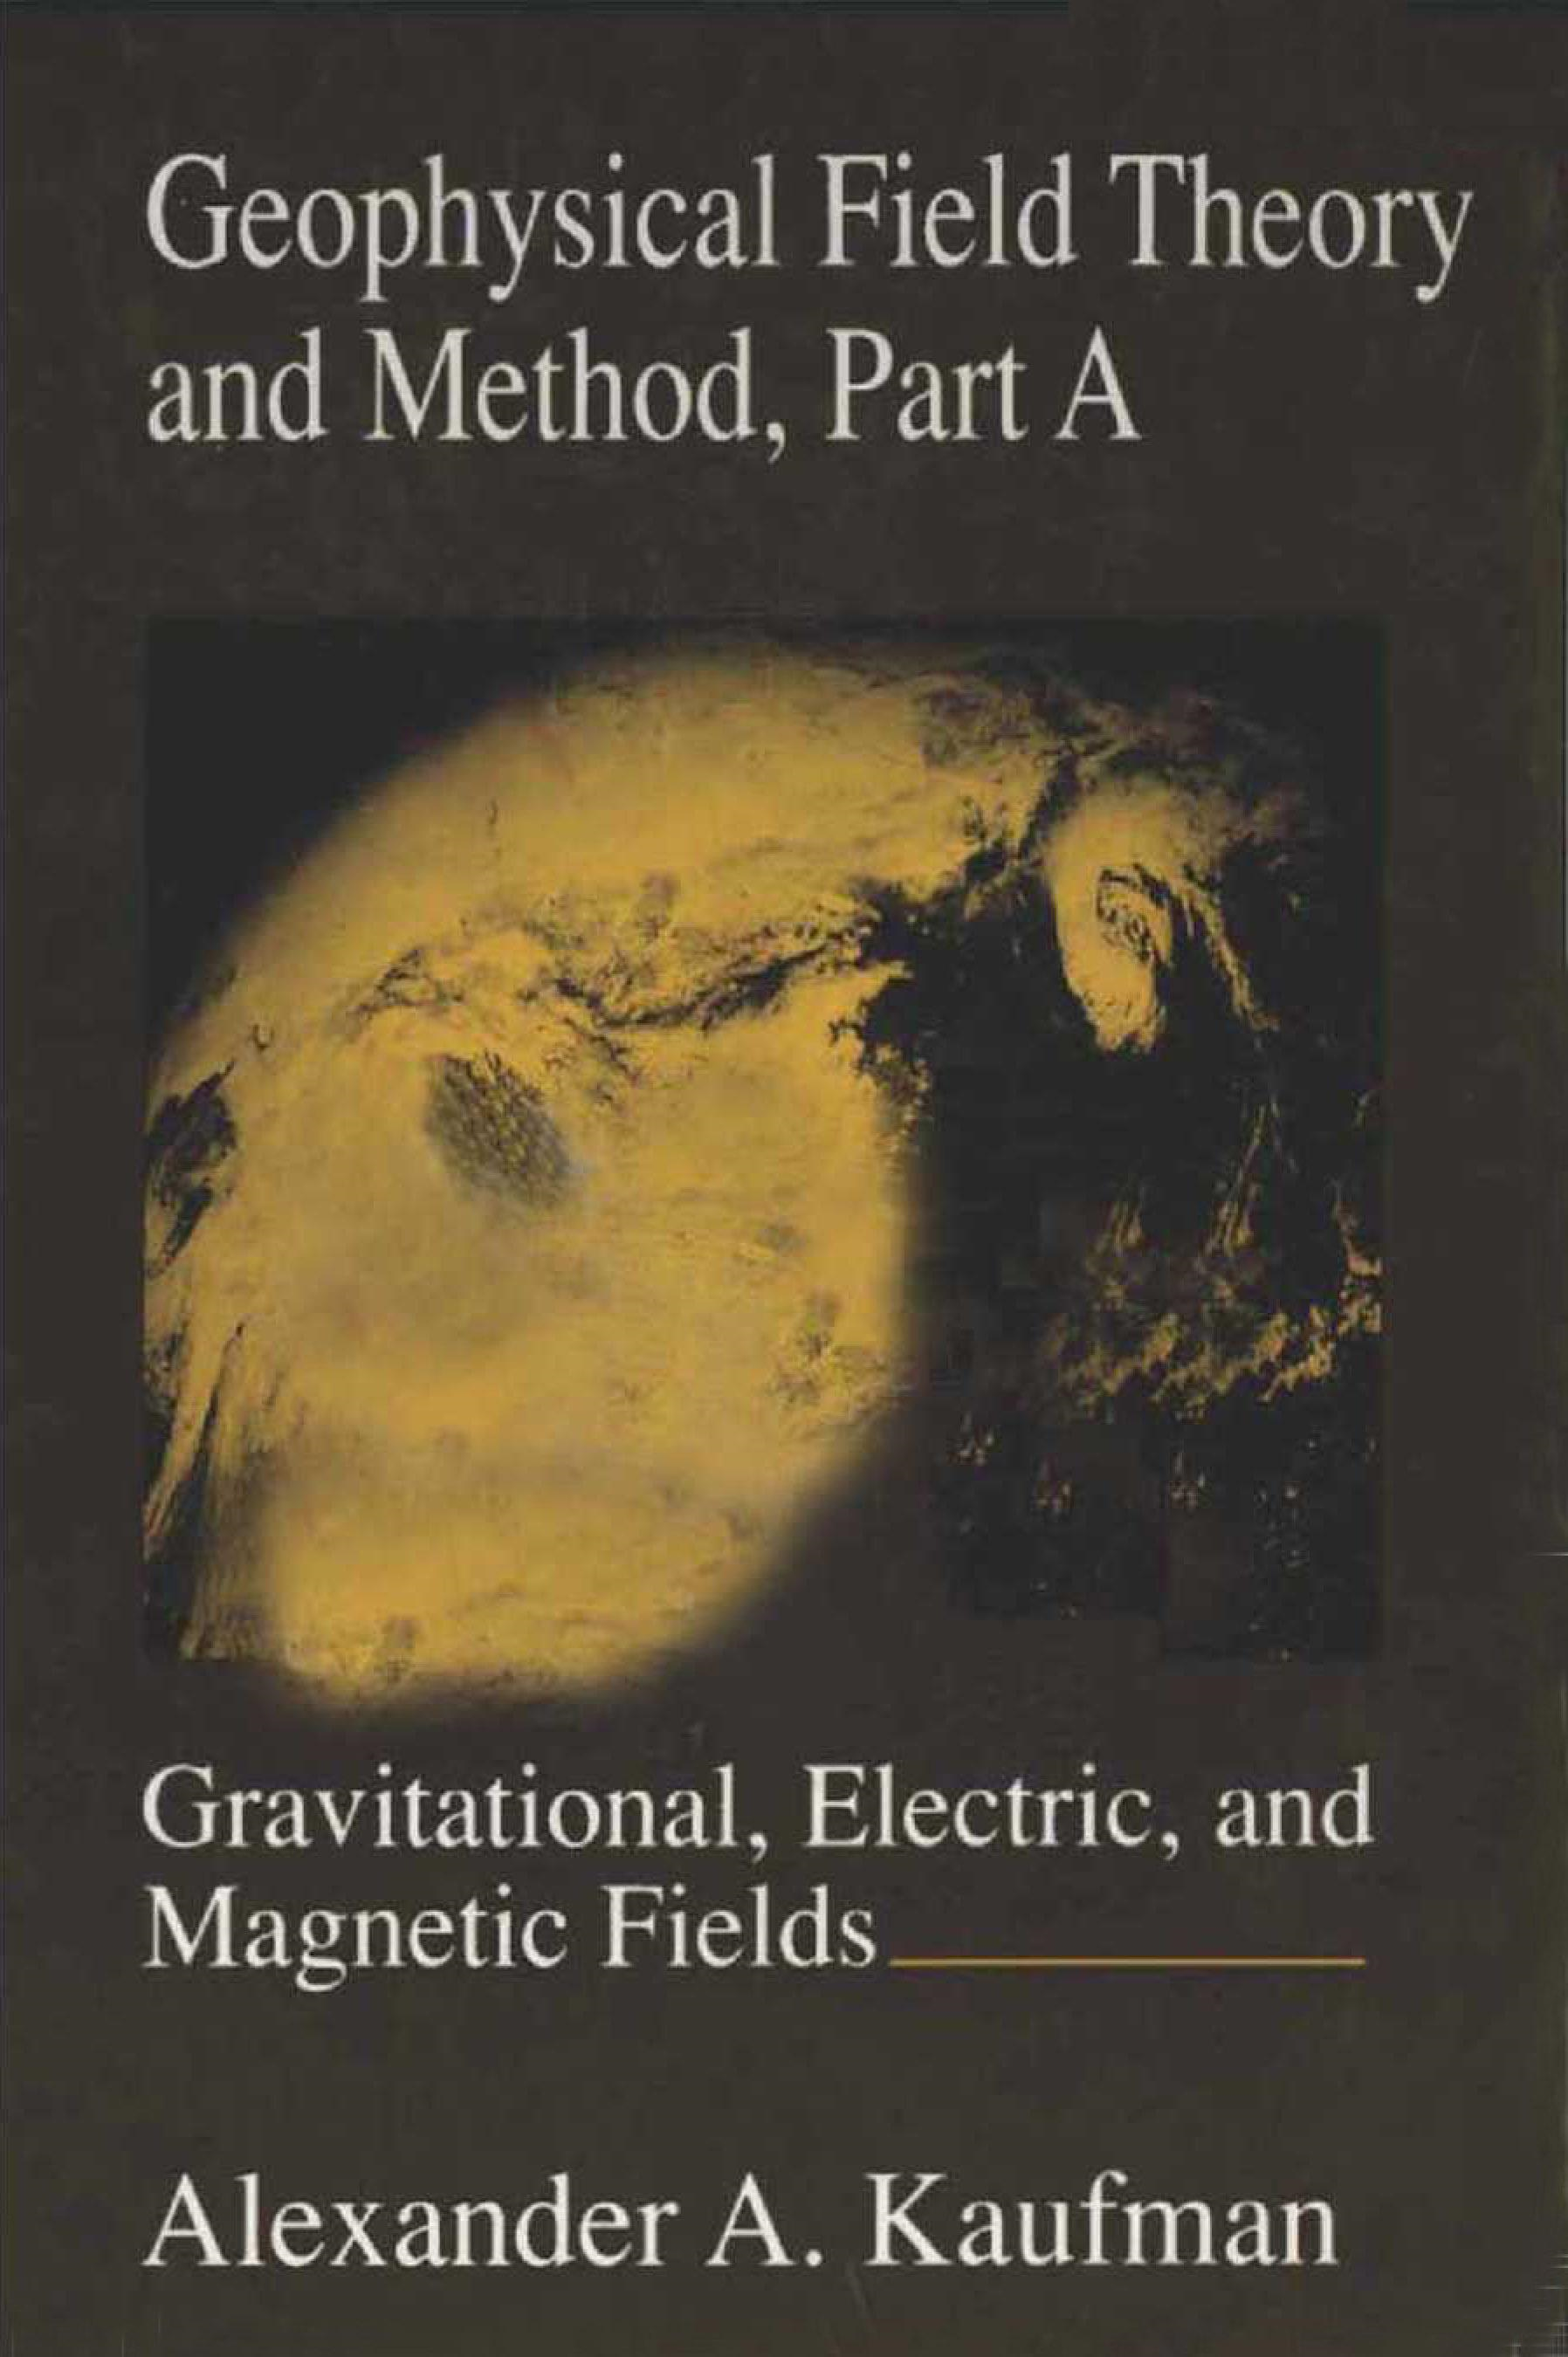 Geophysical Field Theory and Method, Part A: Gravitational, Electric, and Magnetic Fields